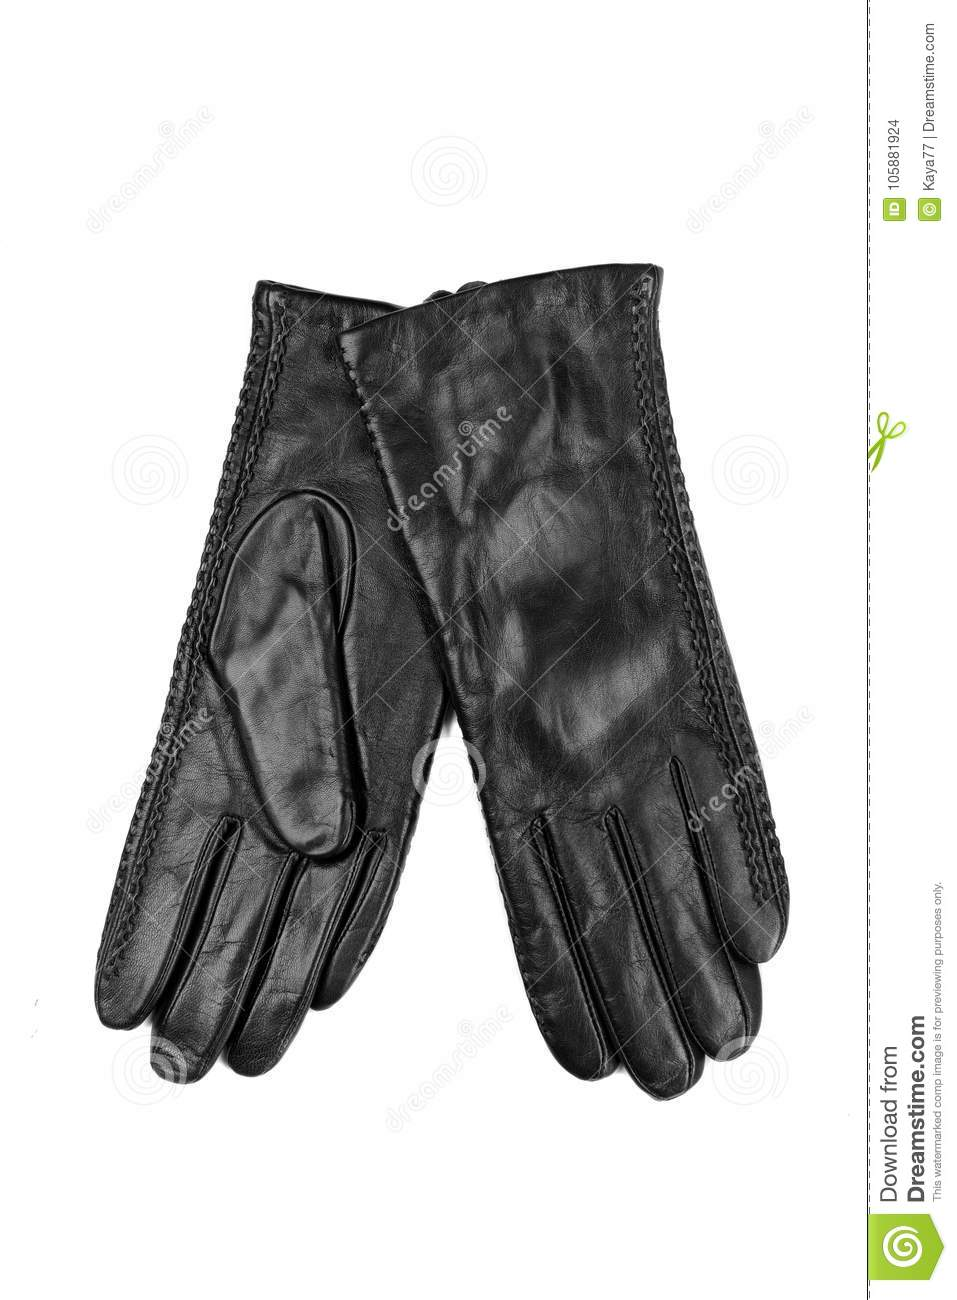 74238fcf3 Pair Of Women`s Leather Gloves. Isolate Stock Photo - Image of ...